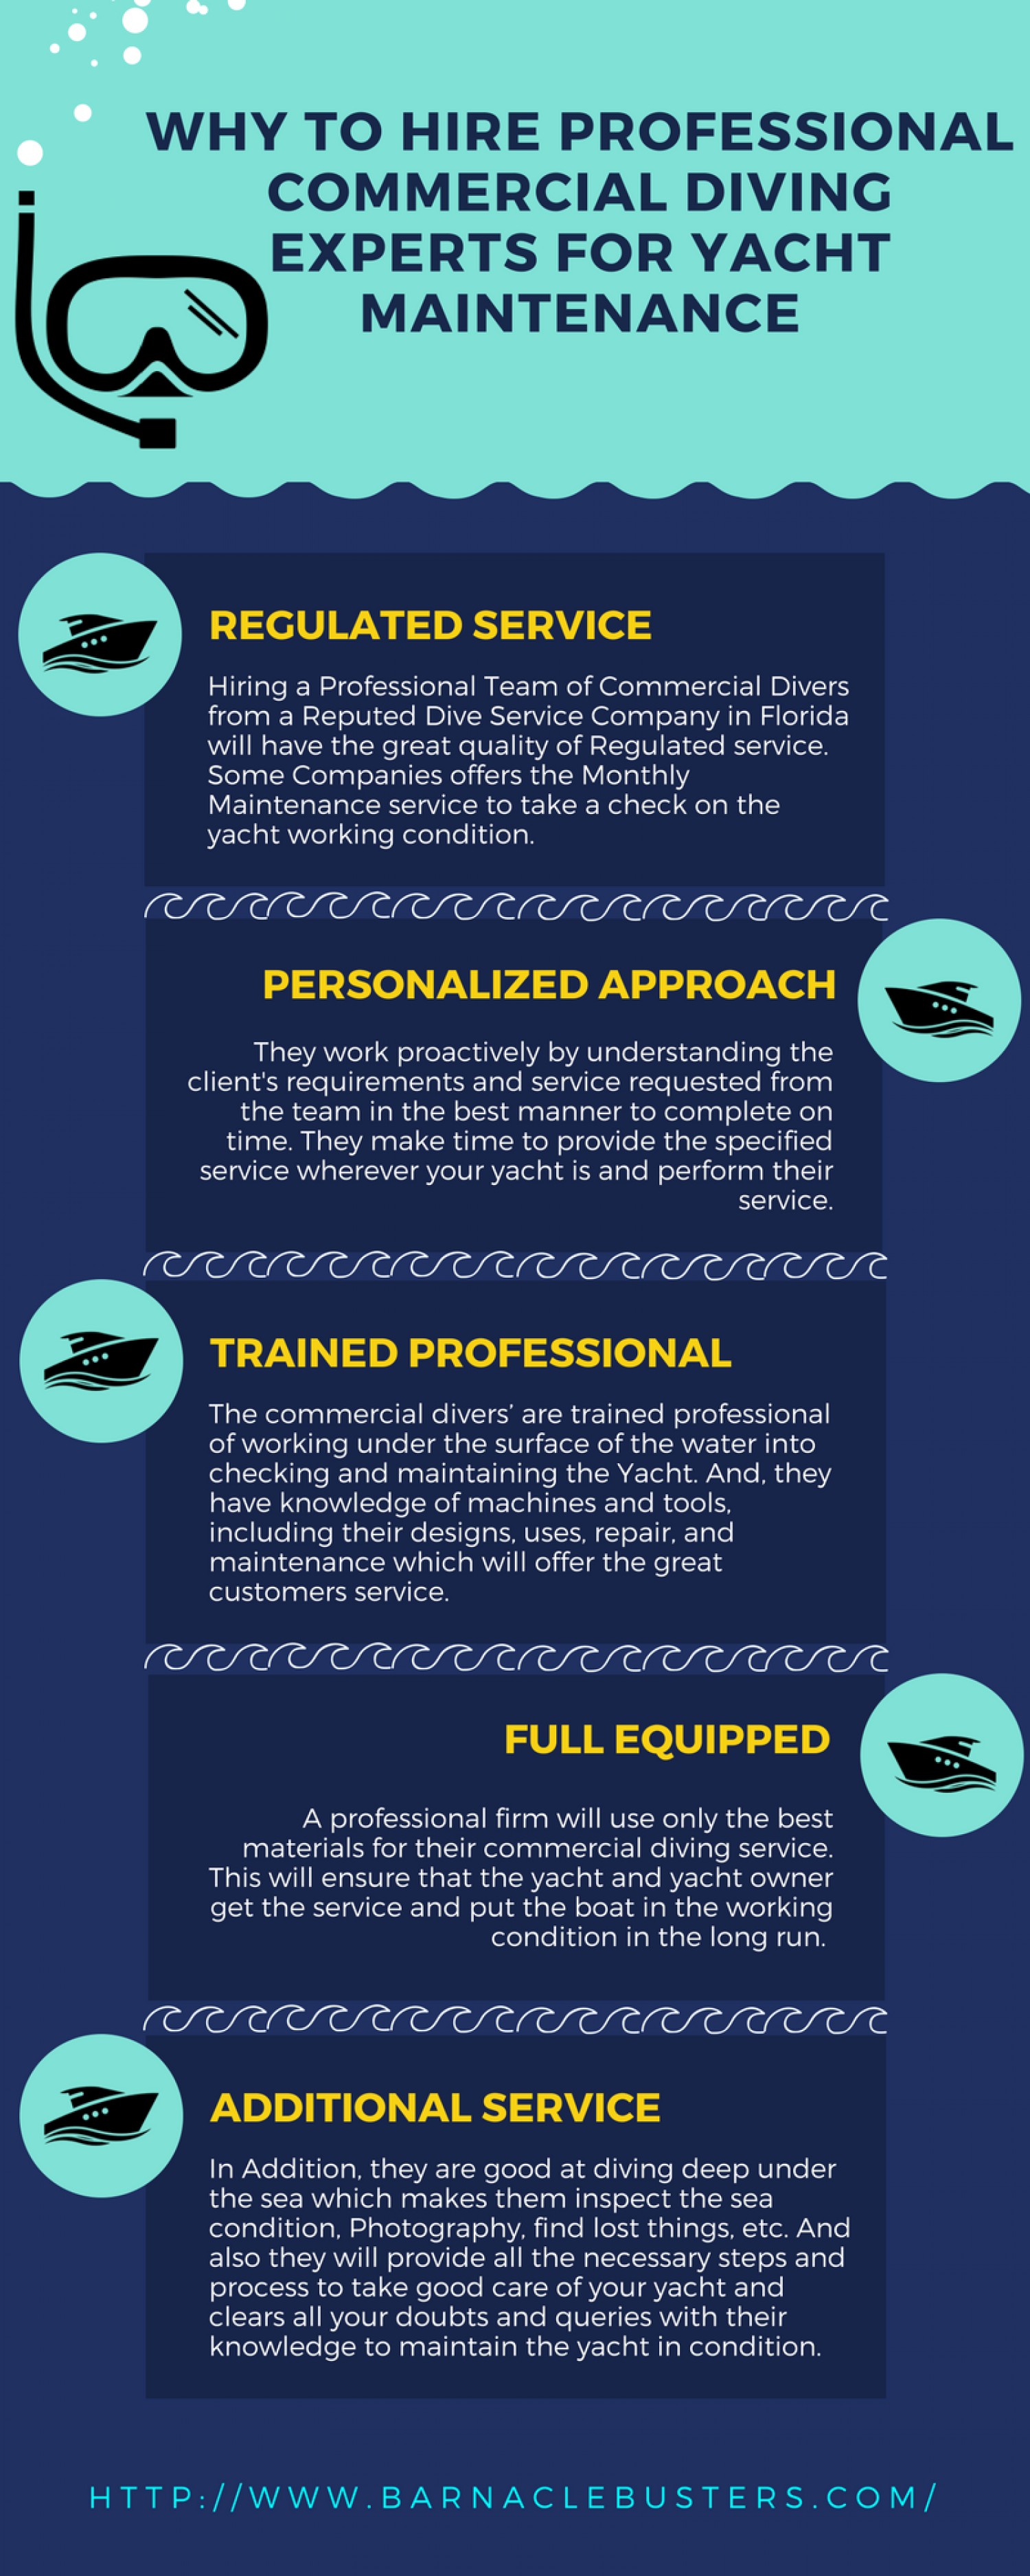 Why to hire Professional Commercial Diving experts for Yacht Maintenance Infographic